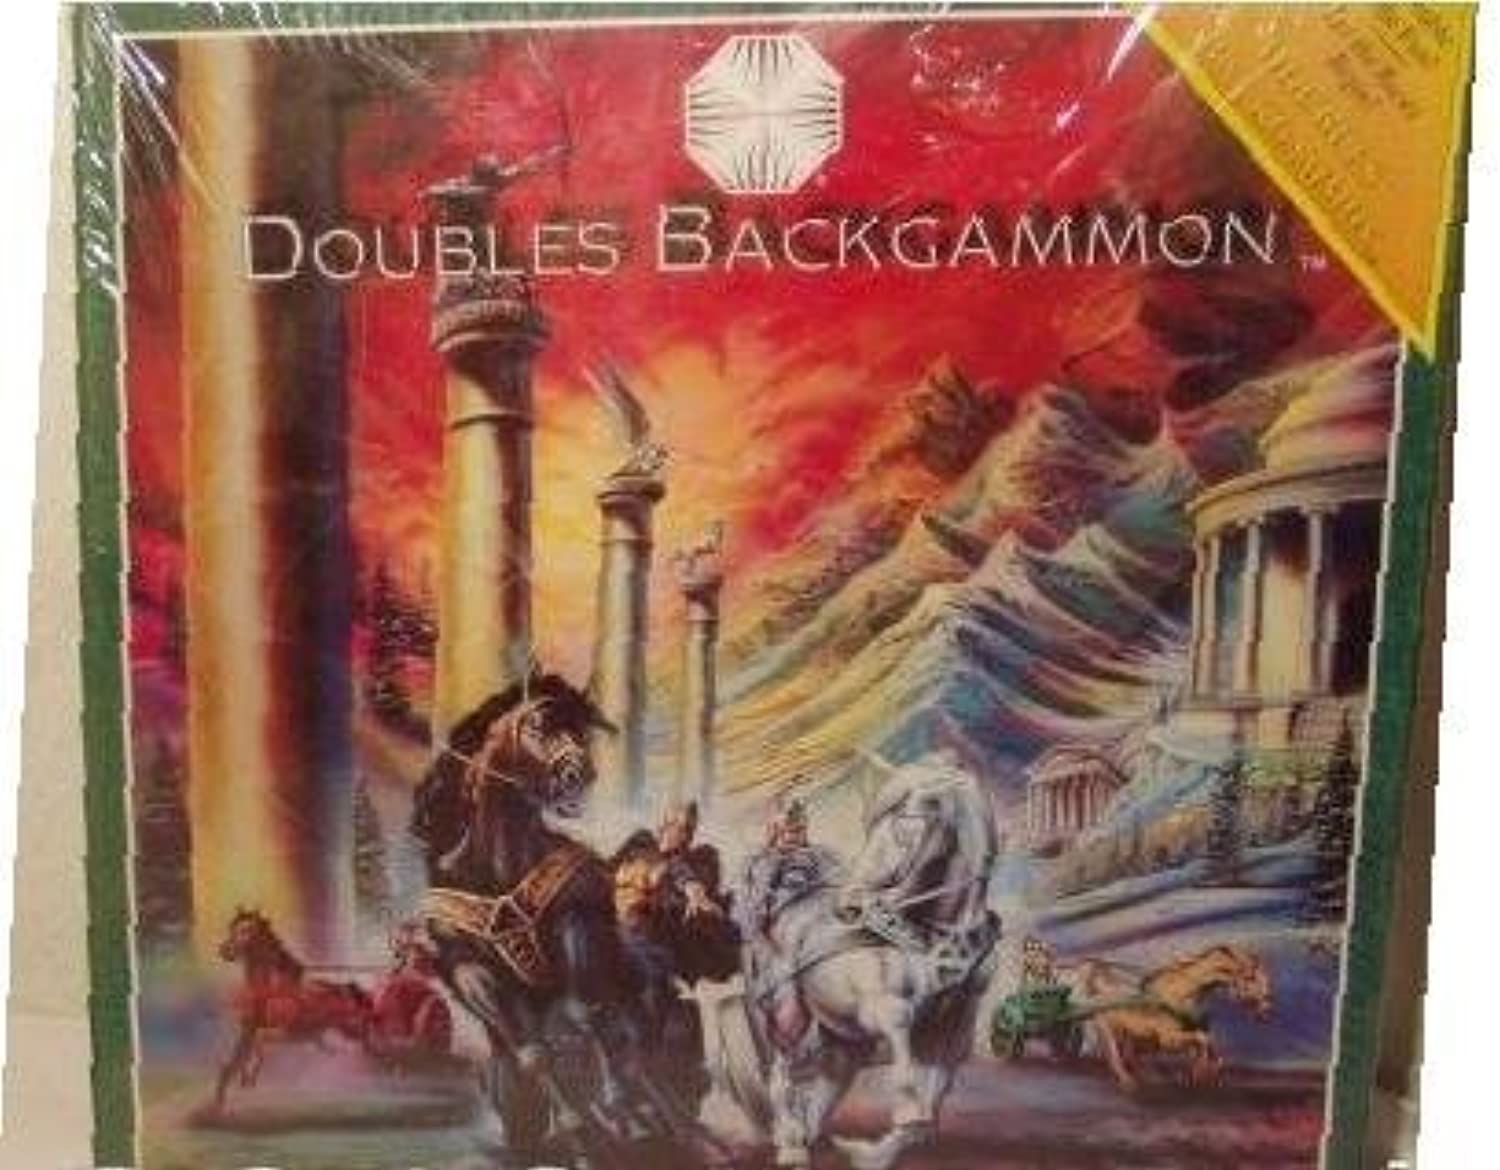 Doubles Backgammon, The Backgammon game for Partners by Amica International